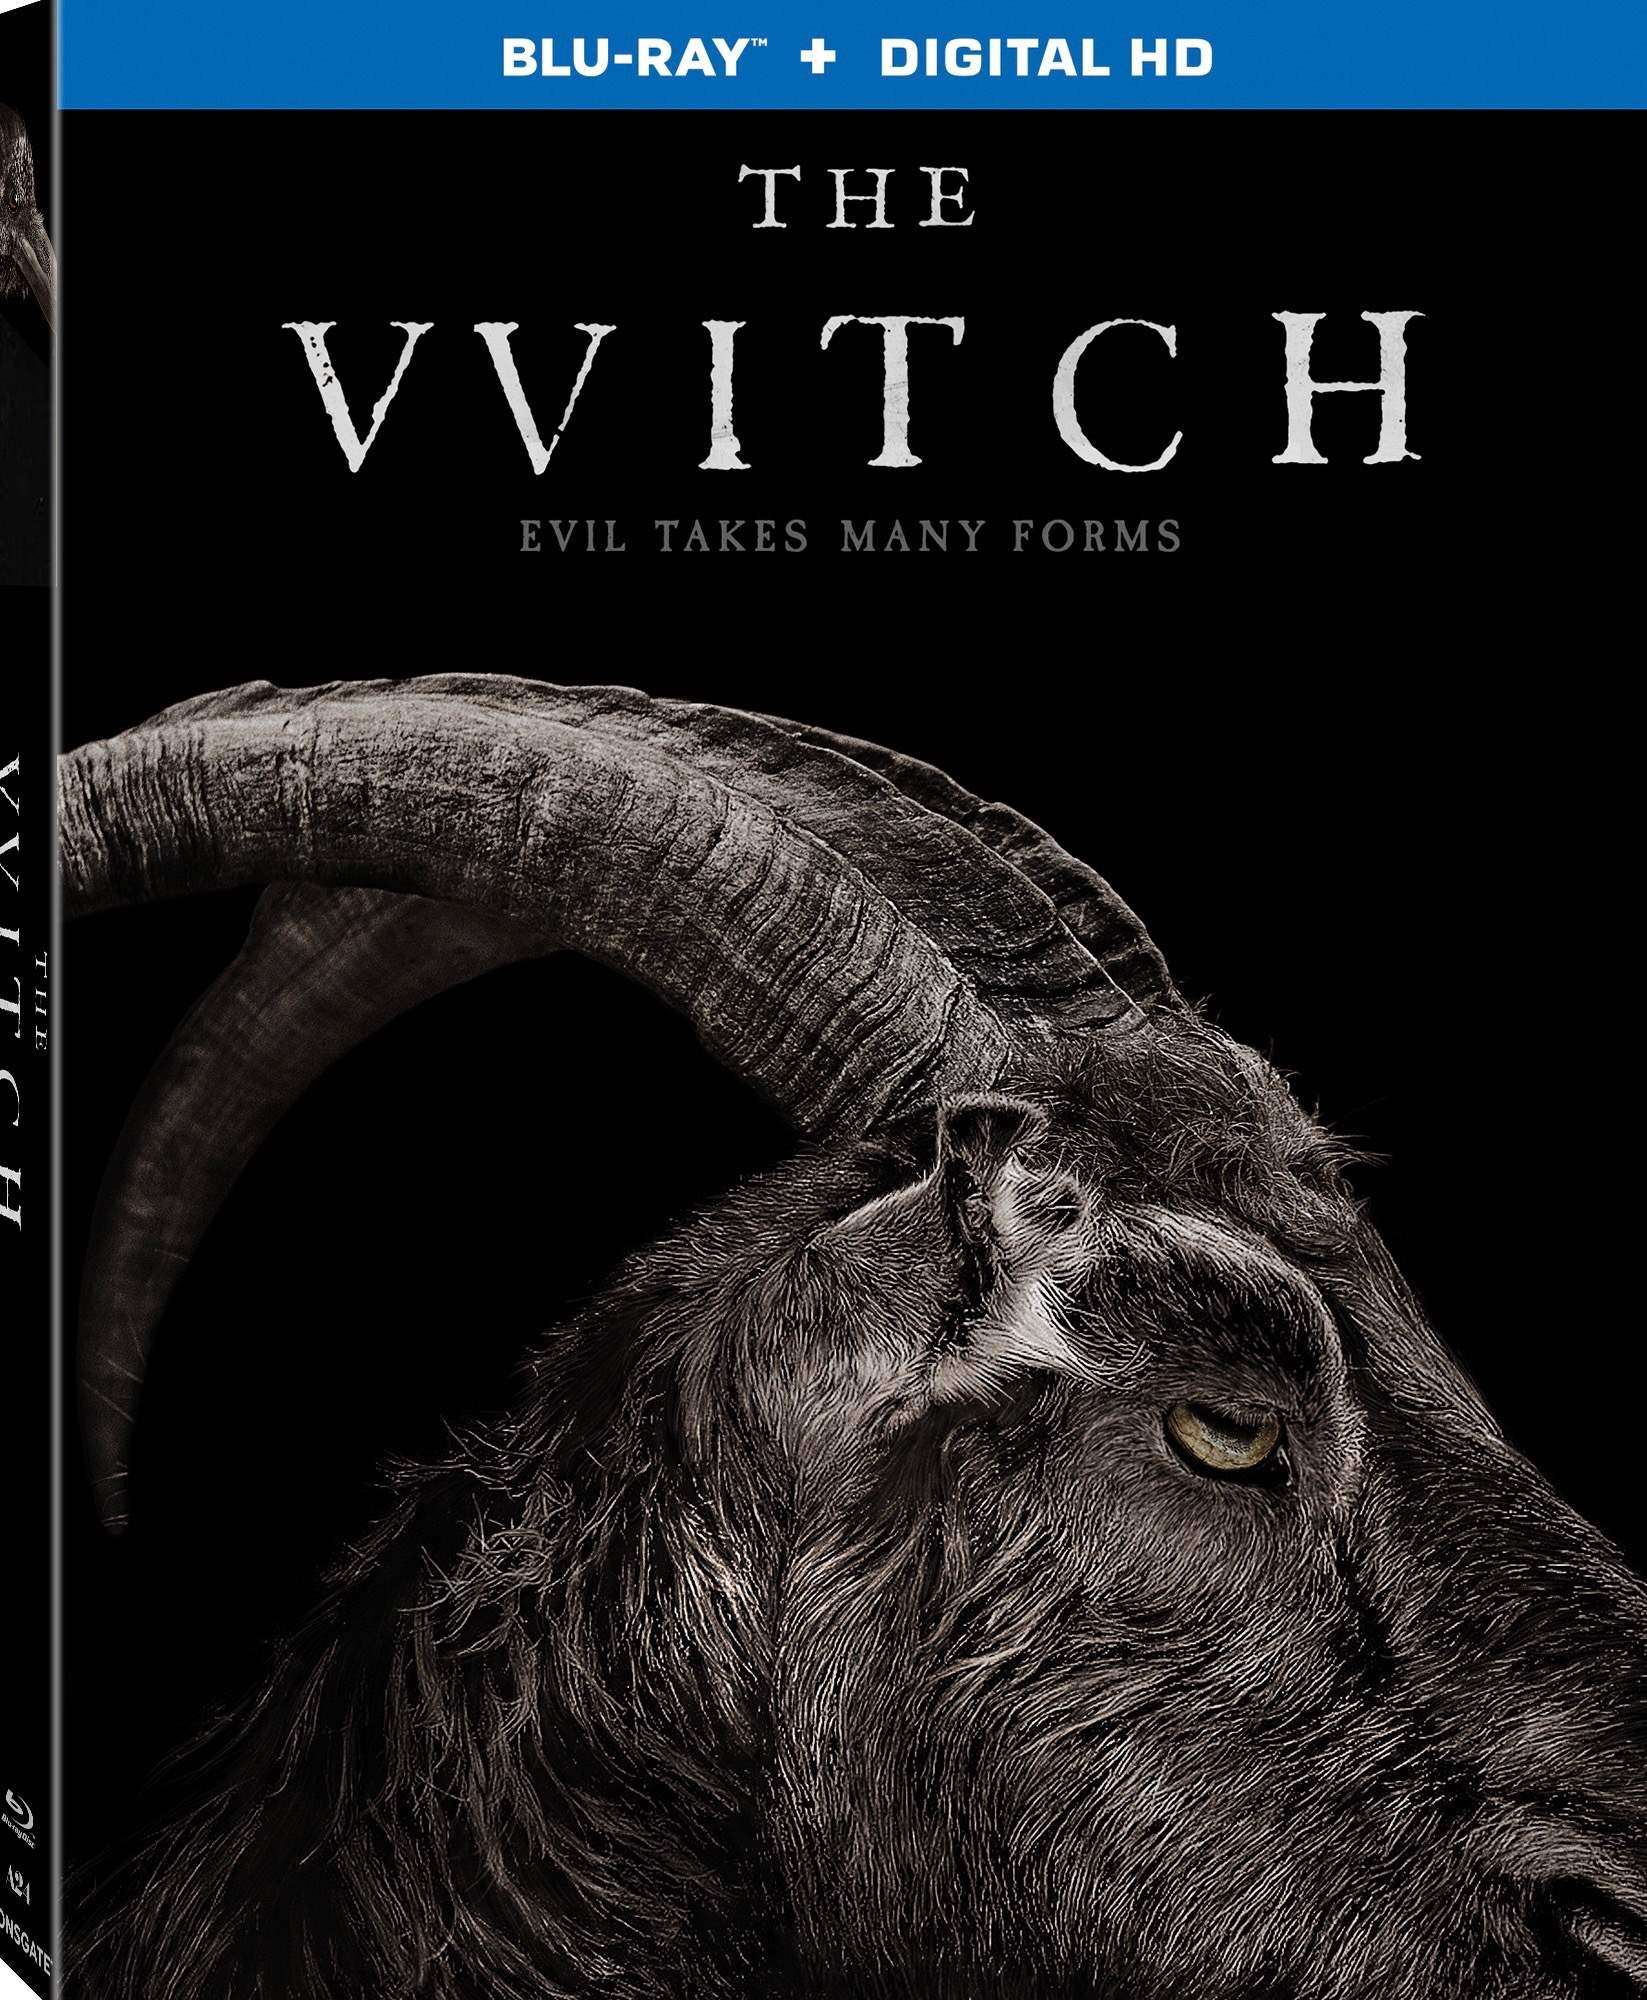 The Witch Blu-ray Art